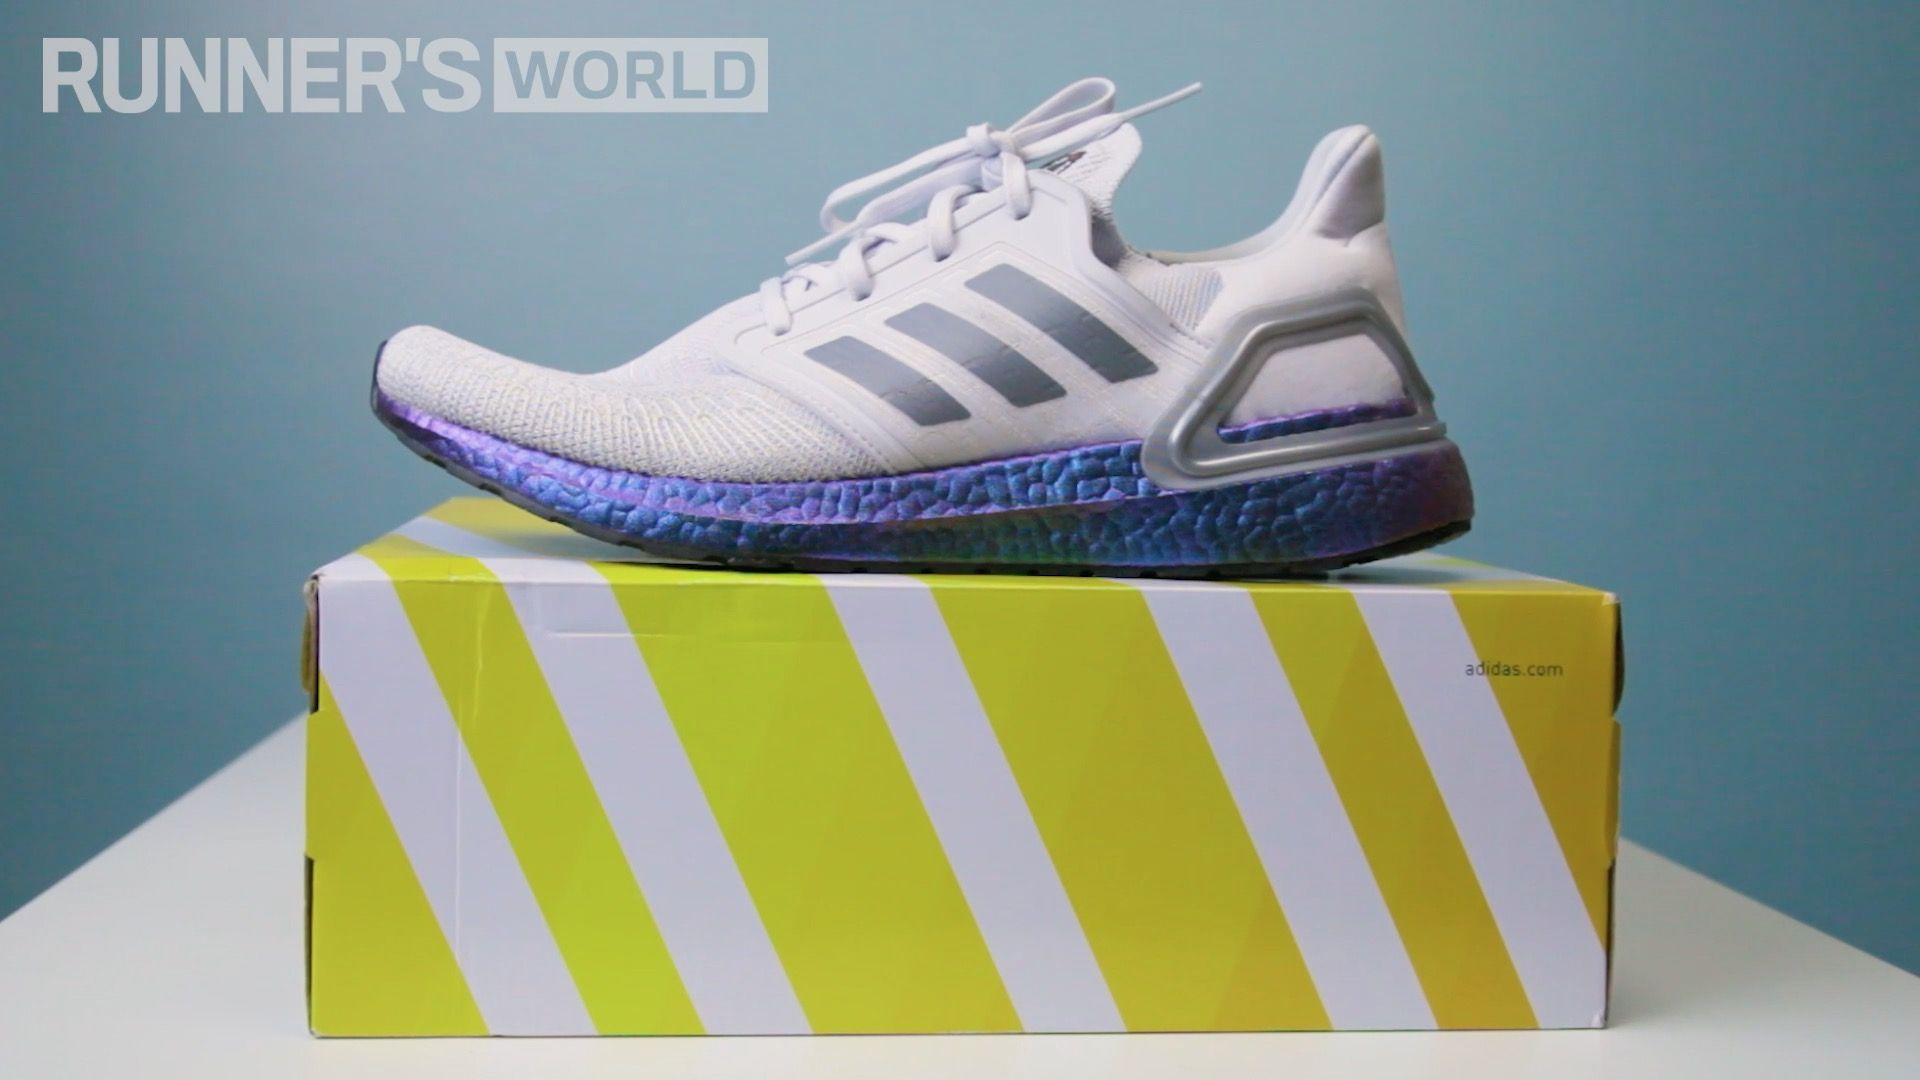 Trainer Chat: Runner's World talks to adidas about the